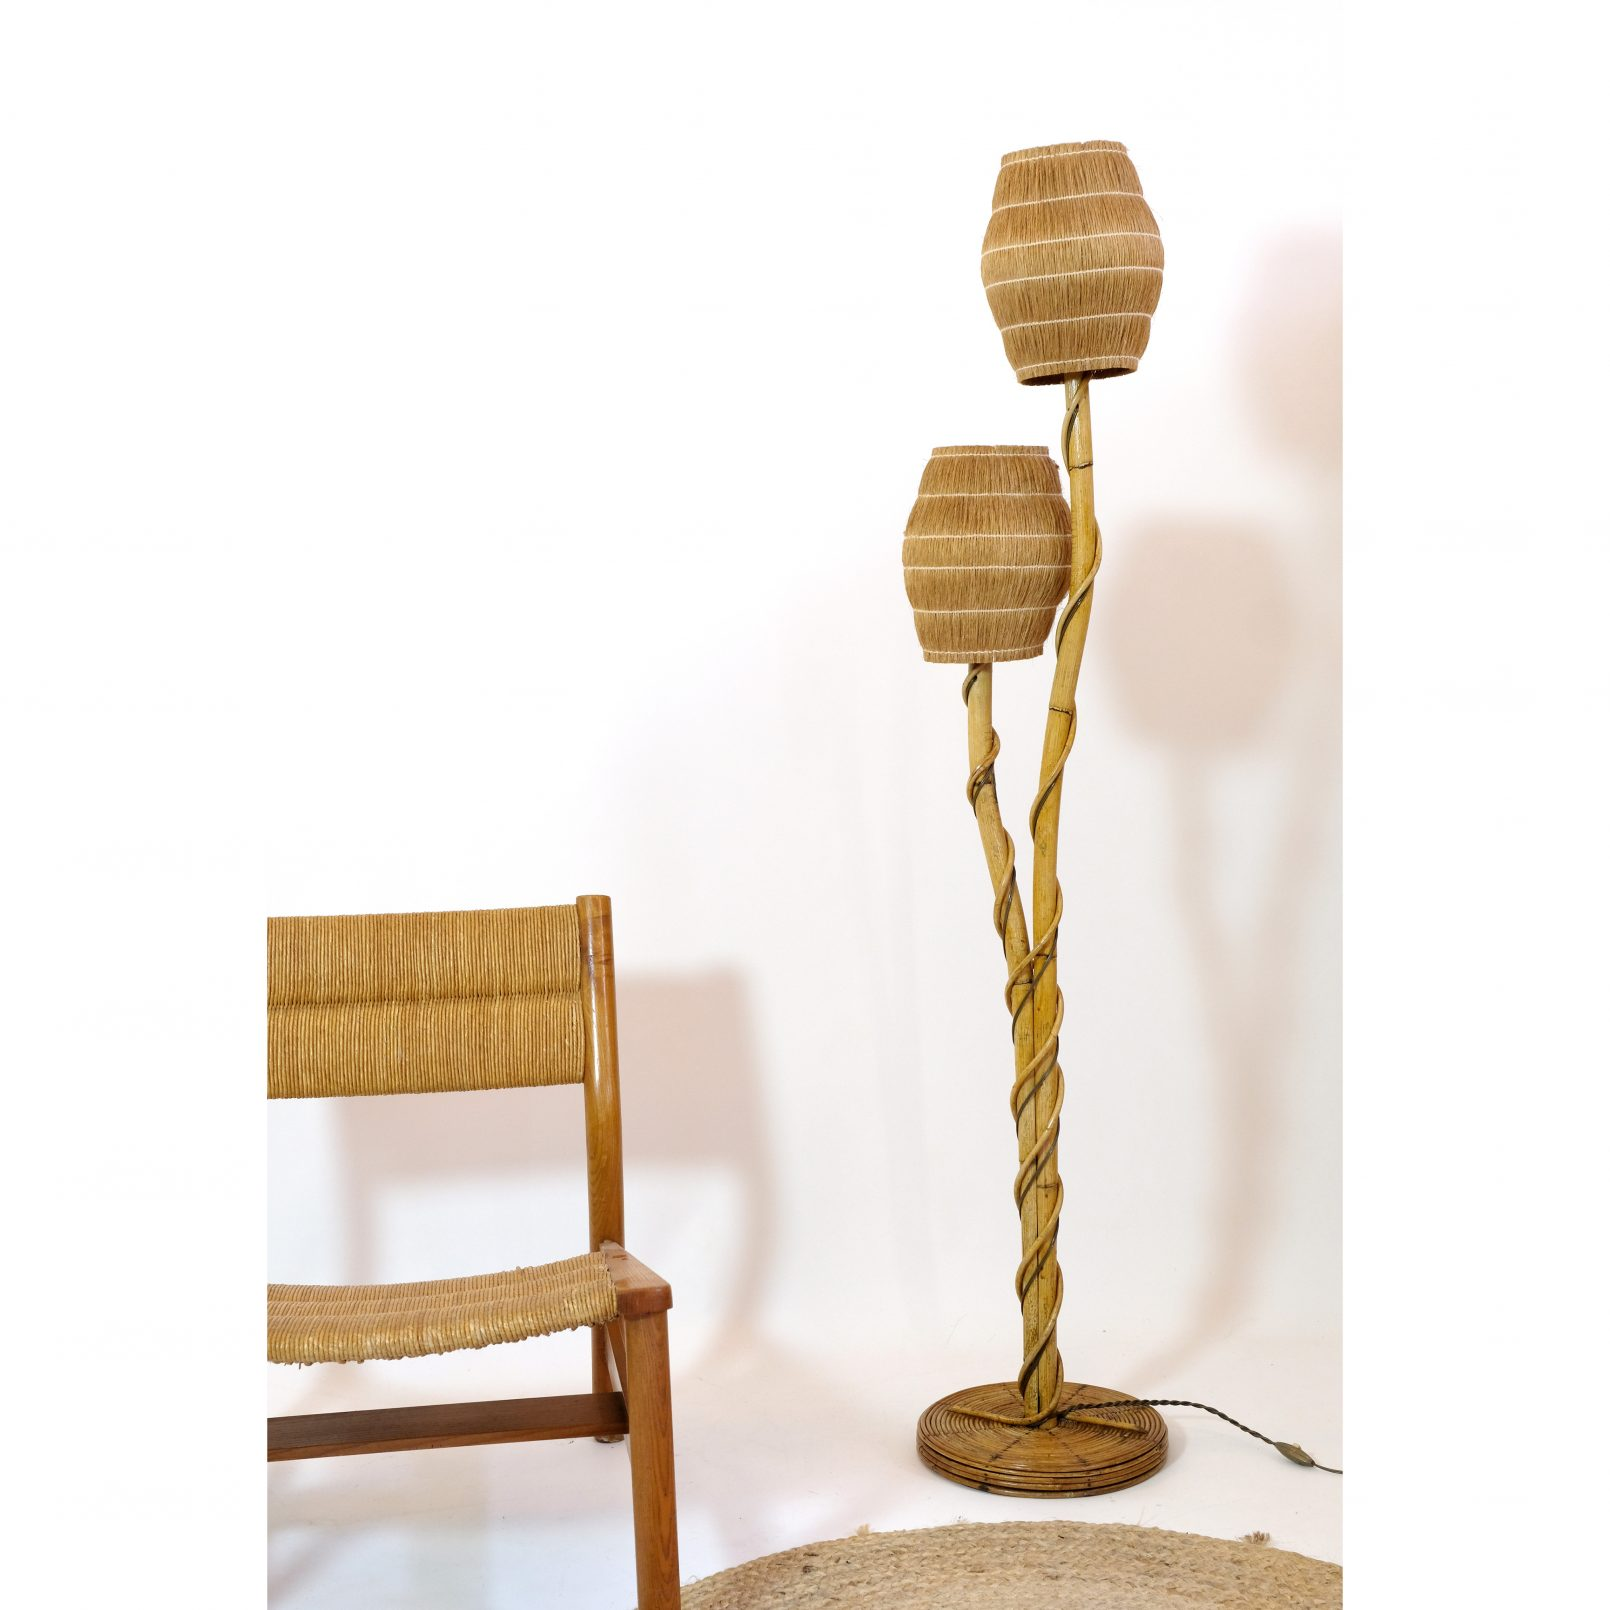 French rattan floor lamp with 2 lights, 1950-1960.